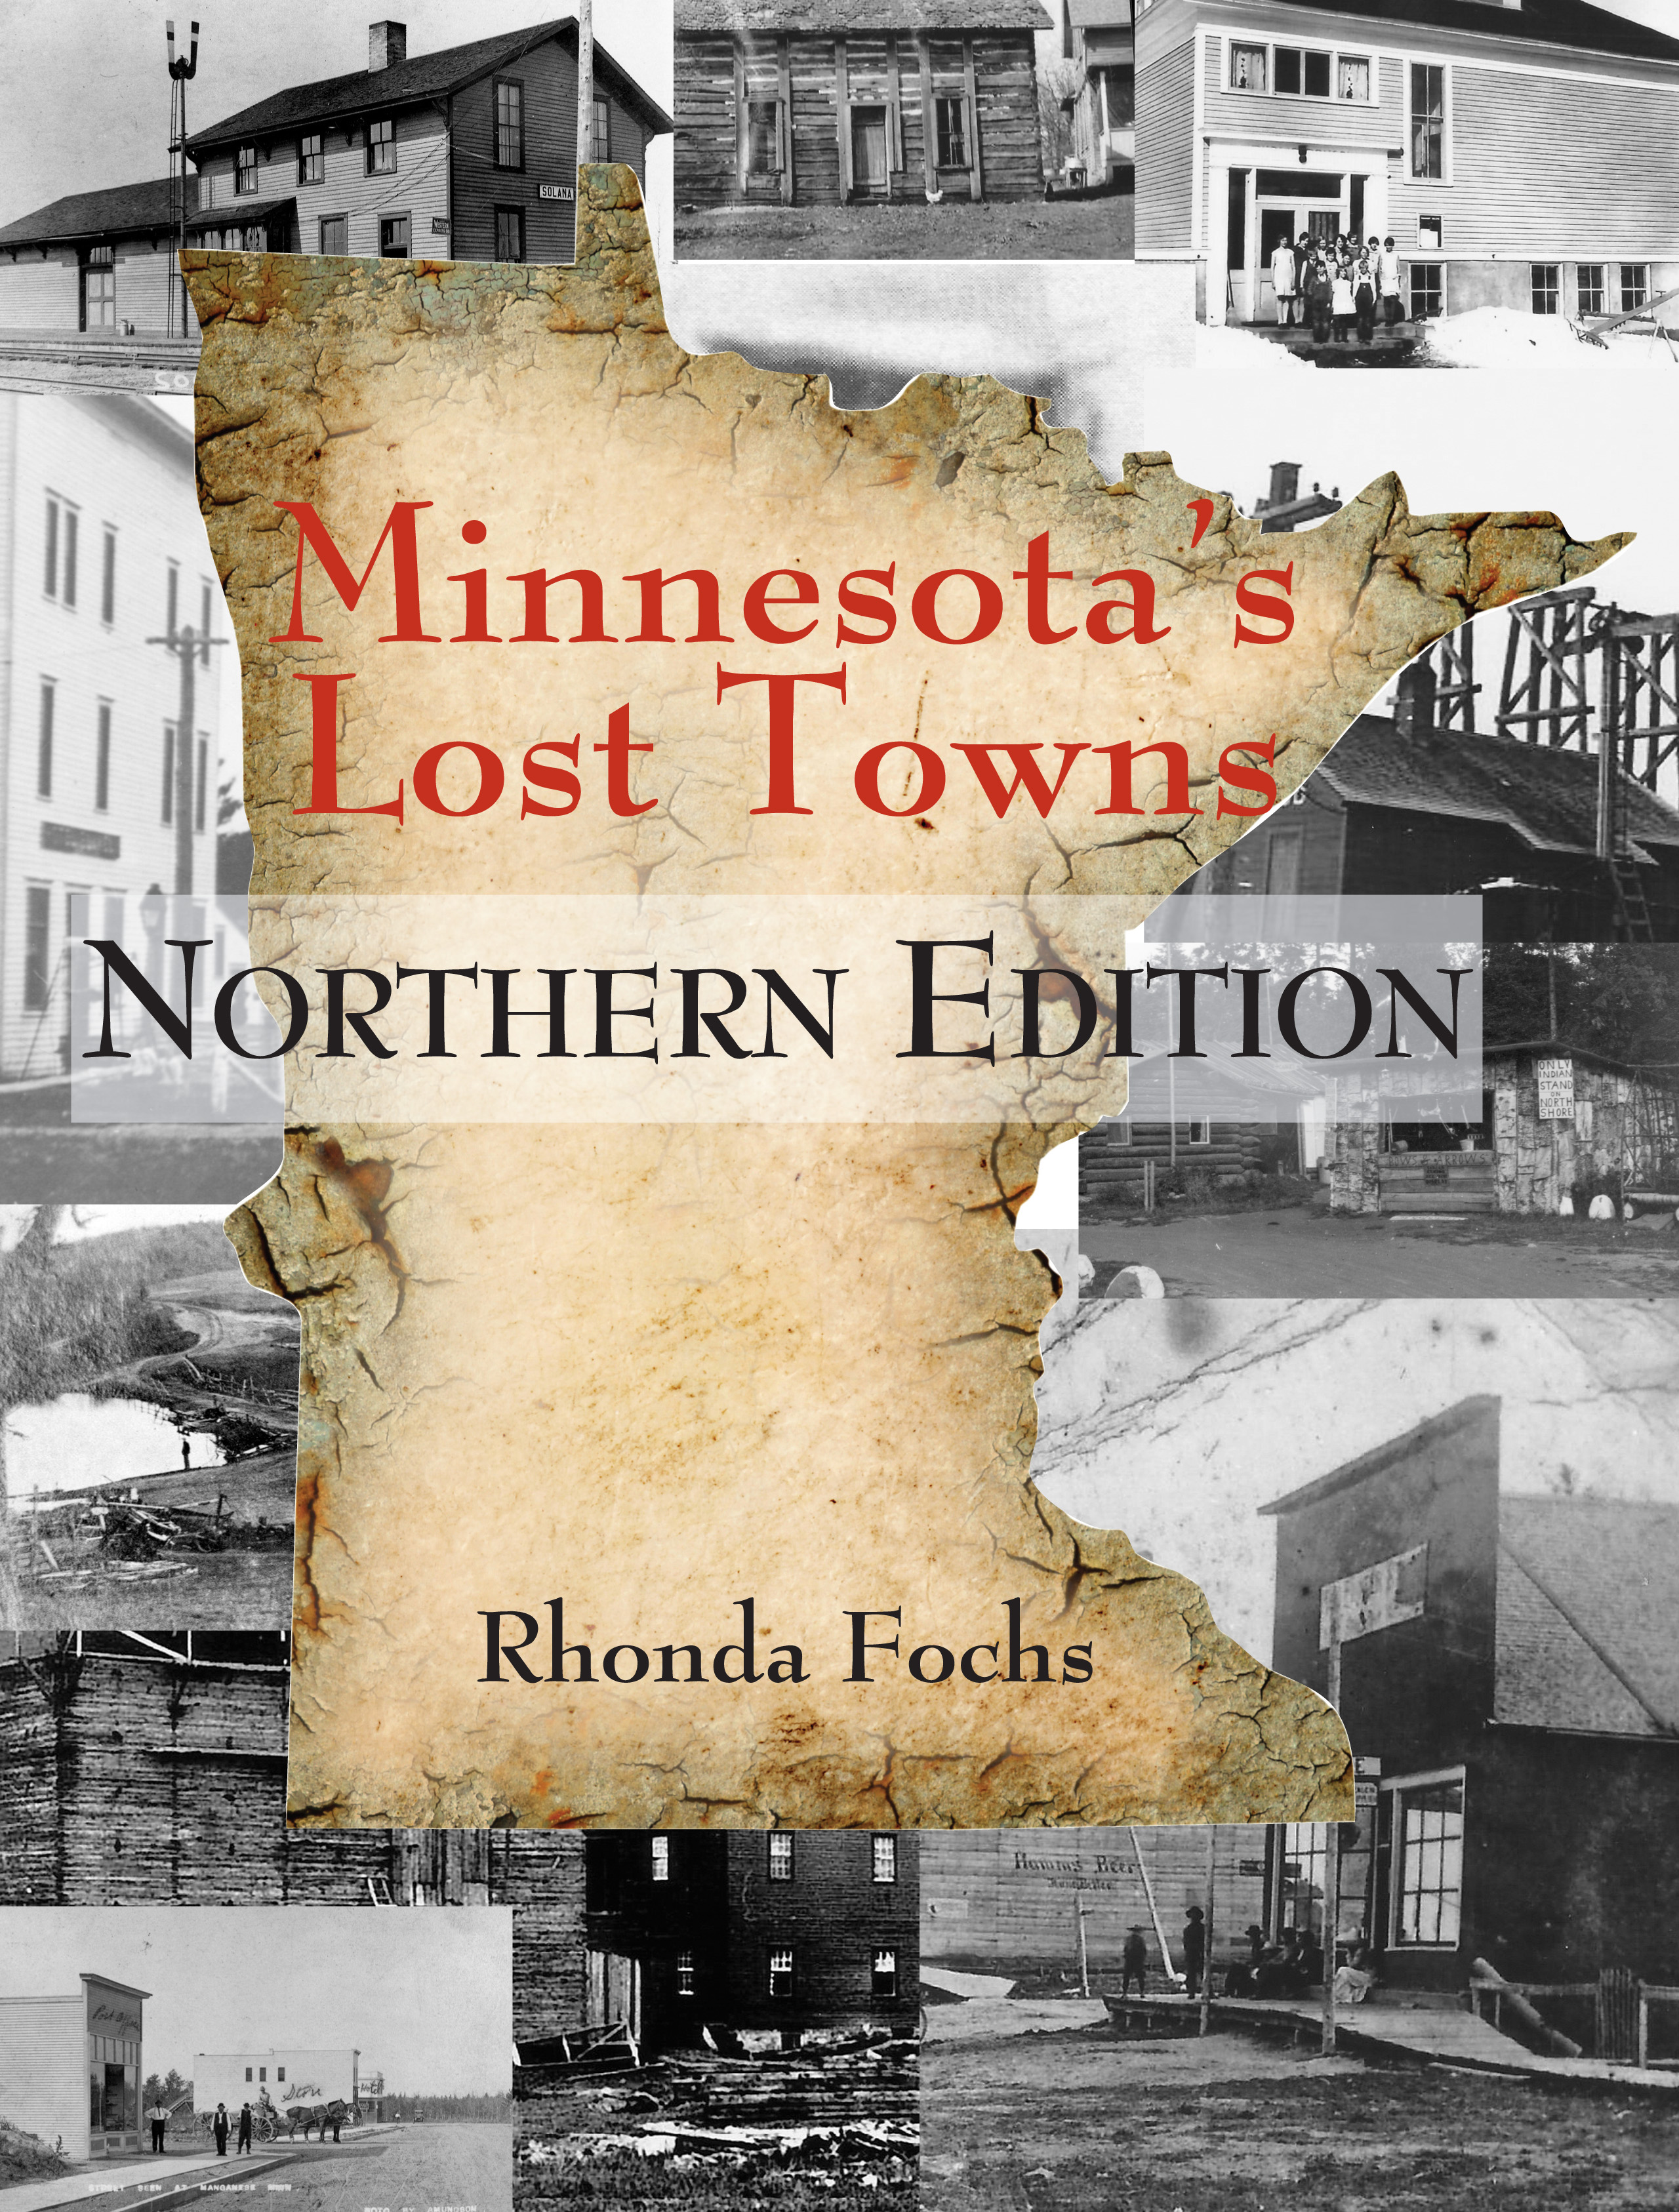 Minnesota's Lost Towns Northern Edition